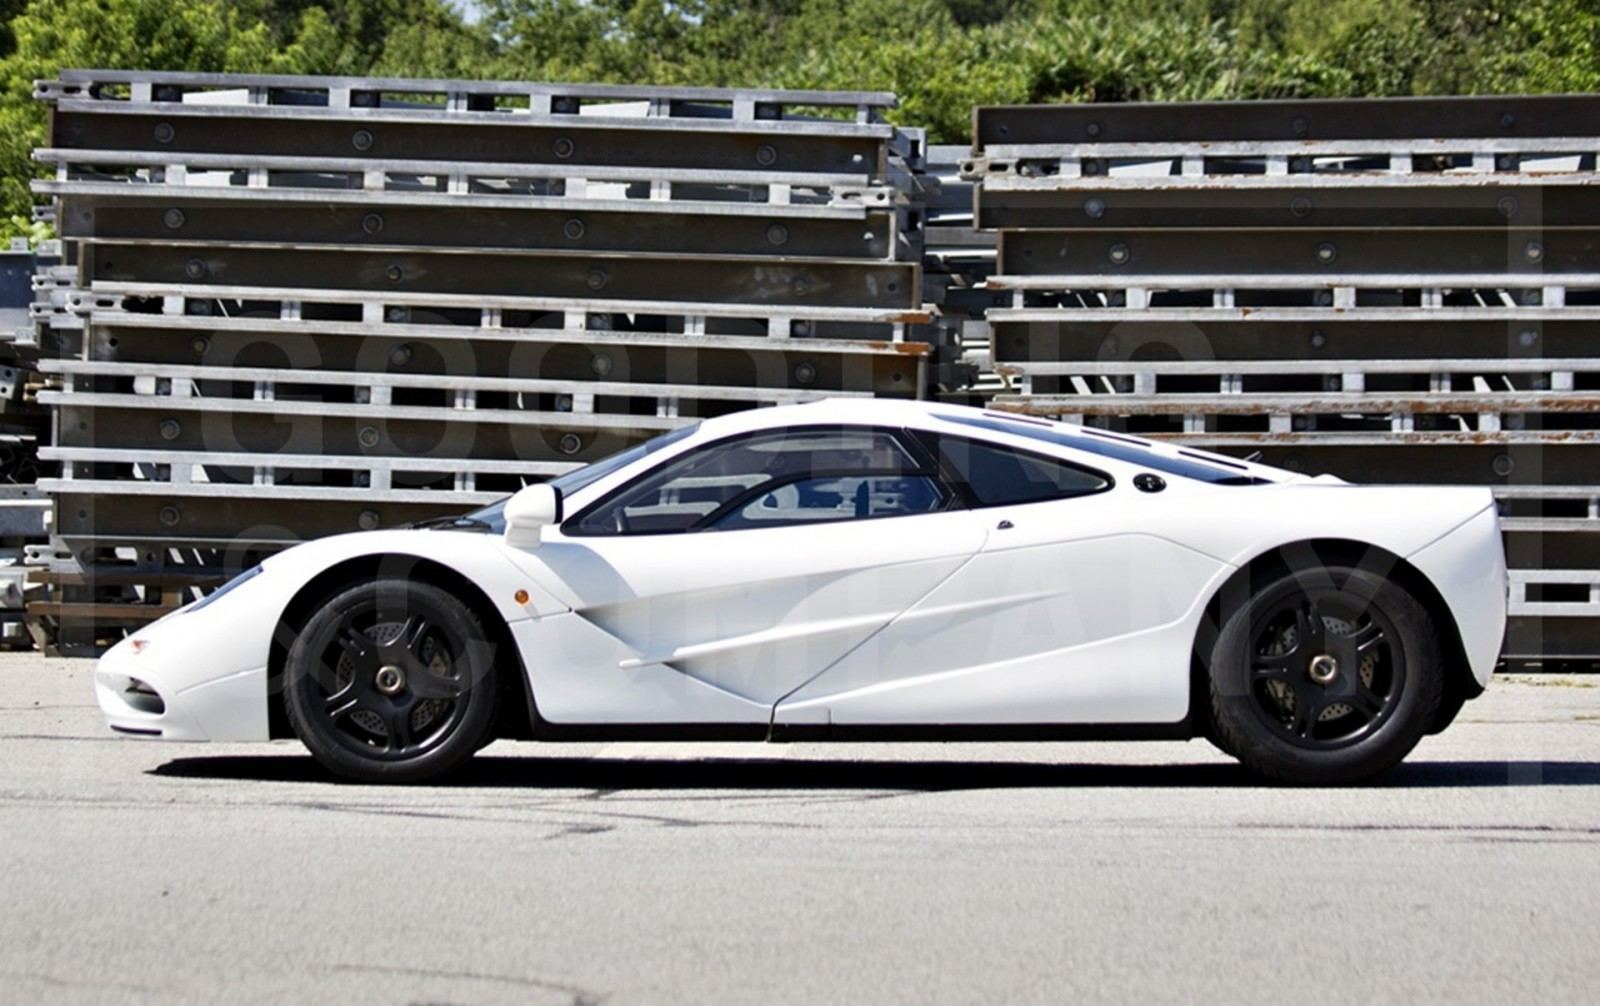 Gooding Pebble Beach 2014 Preview - 1995 McLaren F1 - The Only White F1 Ever Made = $12Mil+ 6